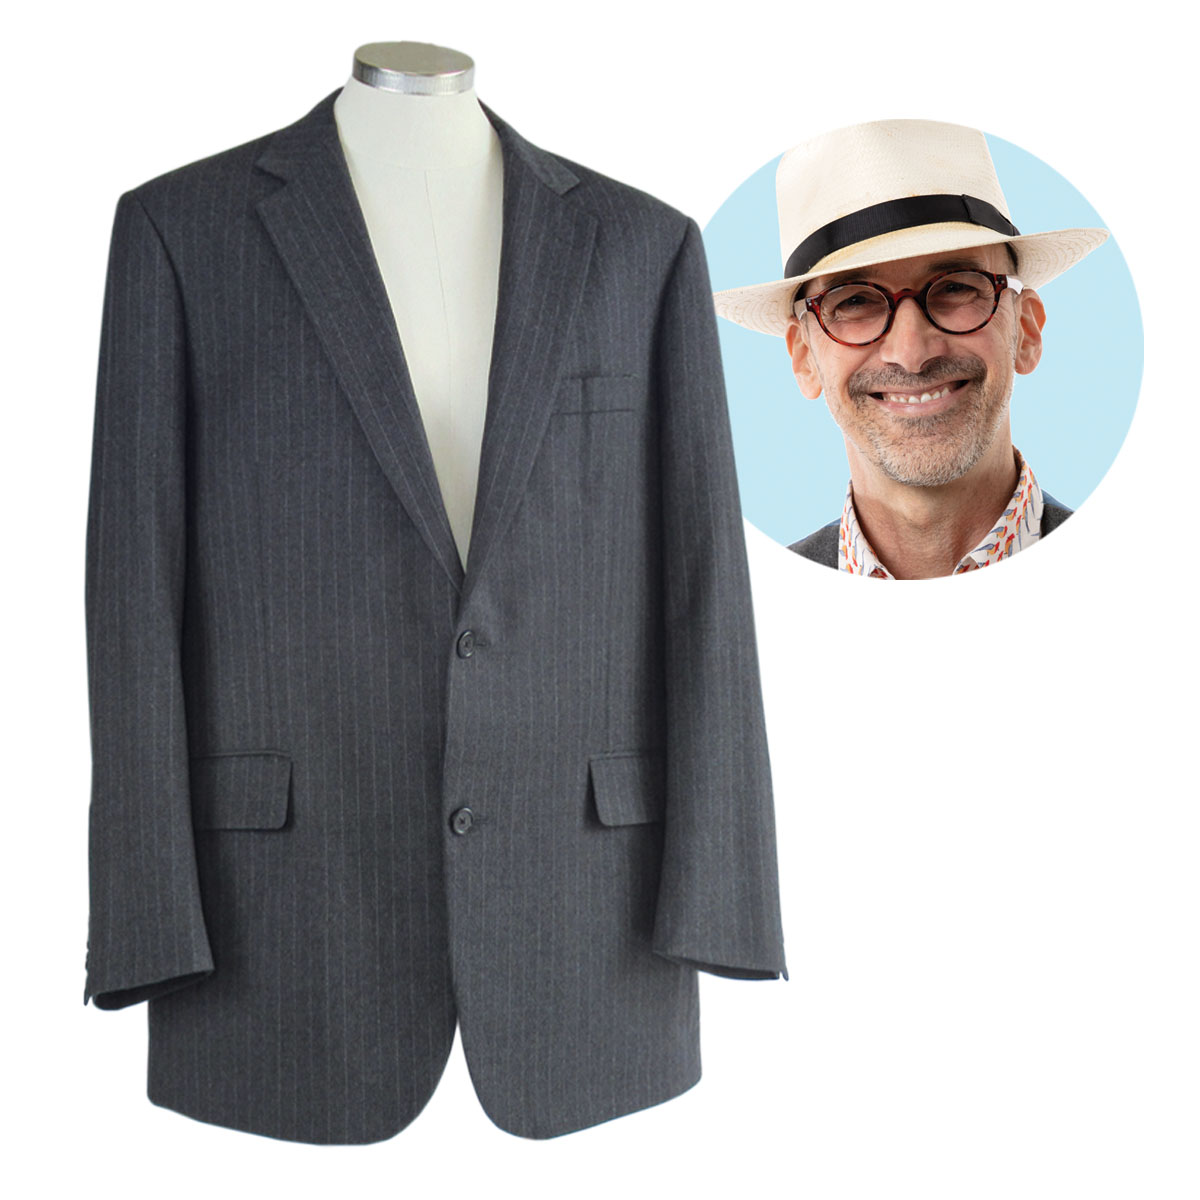 Peter Lappin chose a gray wool flannel pinstripe suit to upcycle